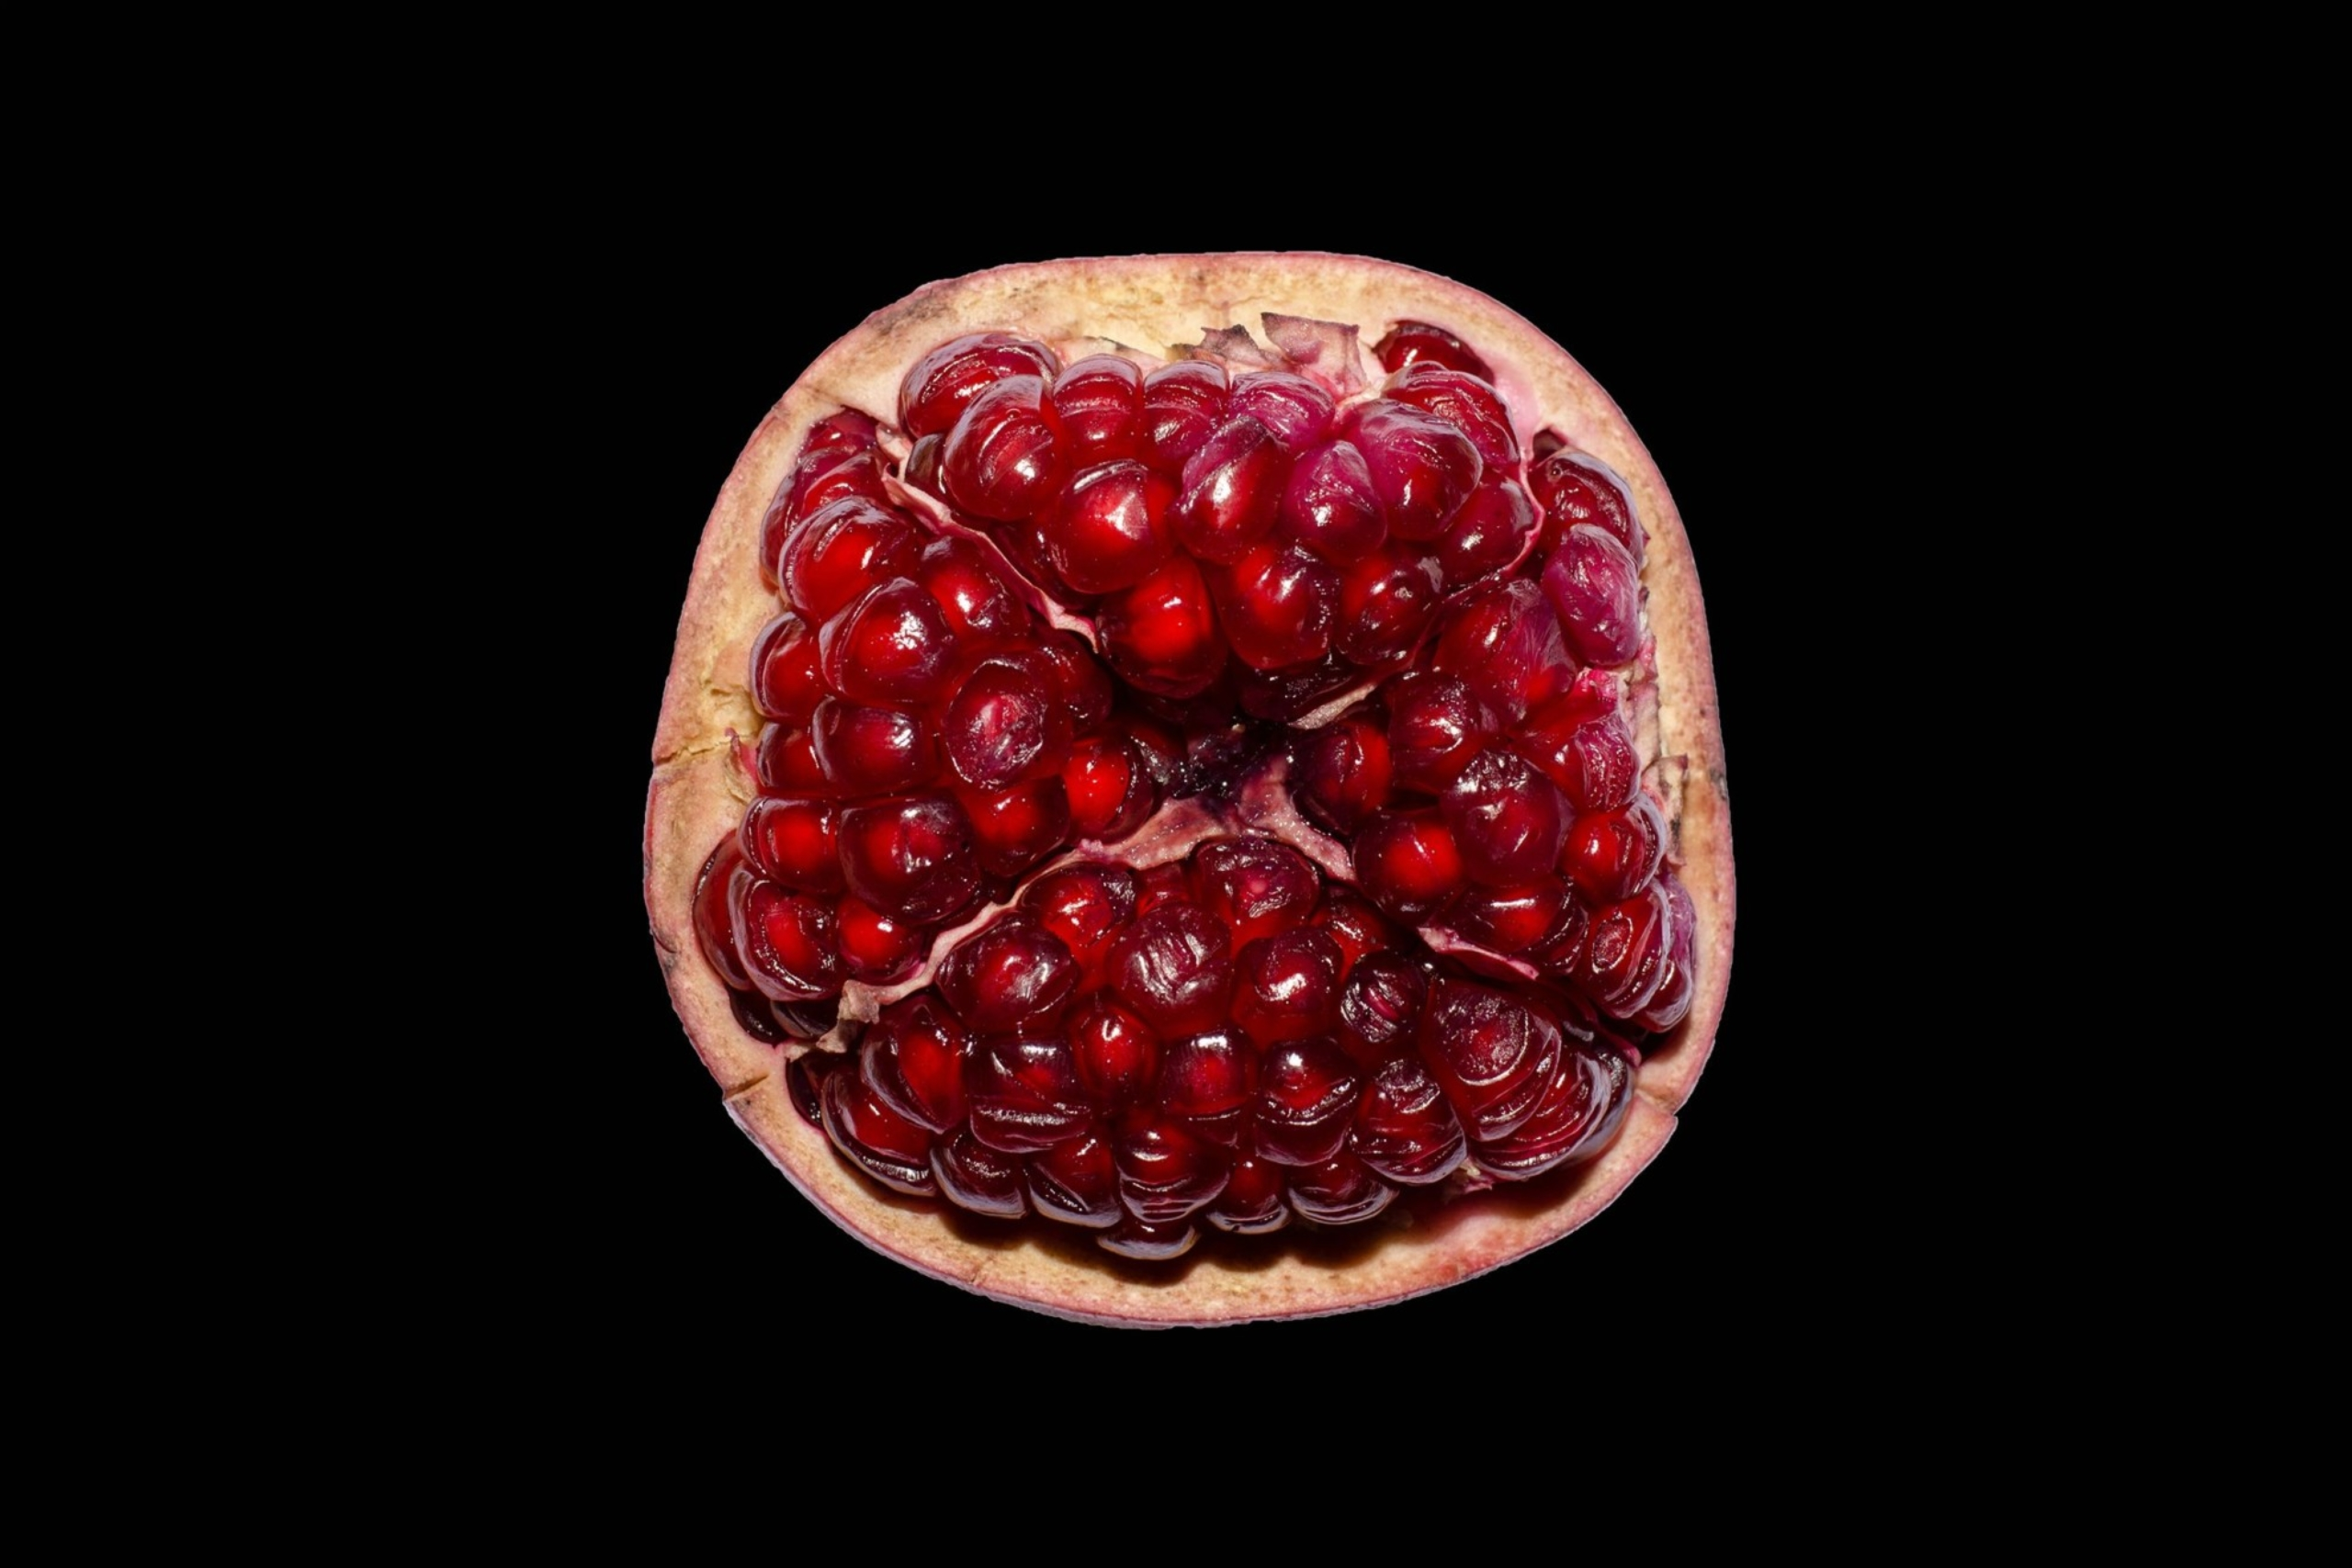 pomegranate seeds - garnet symbolism and legends